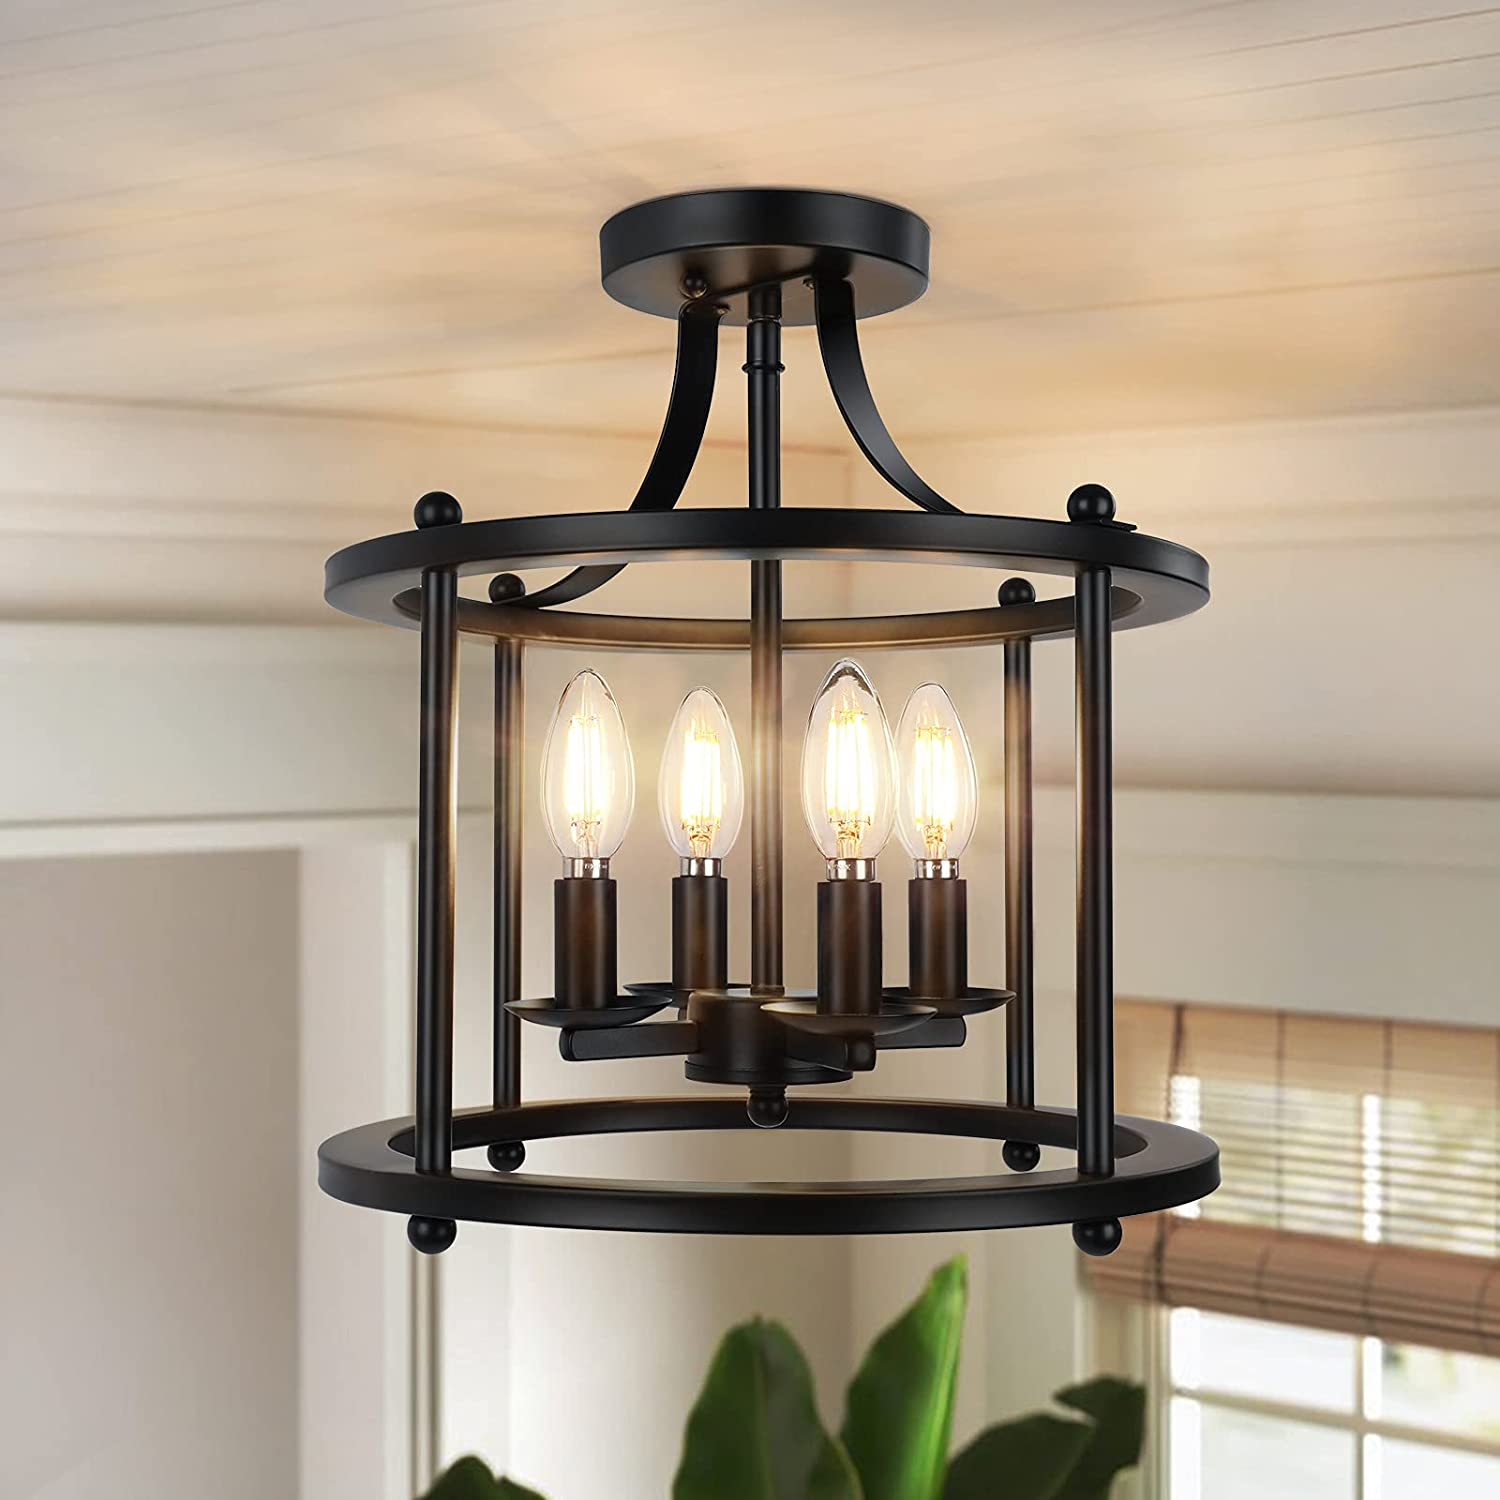 4-Light Farmhouse Ceiling Light Fixture - Industrial Semi Flush Manufacturer sold out direct delivery